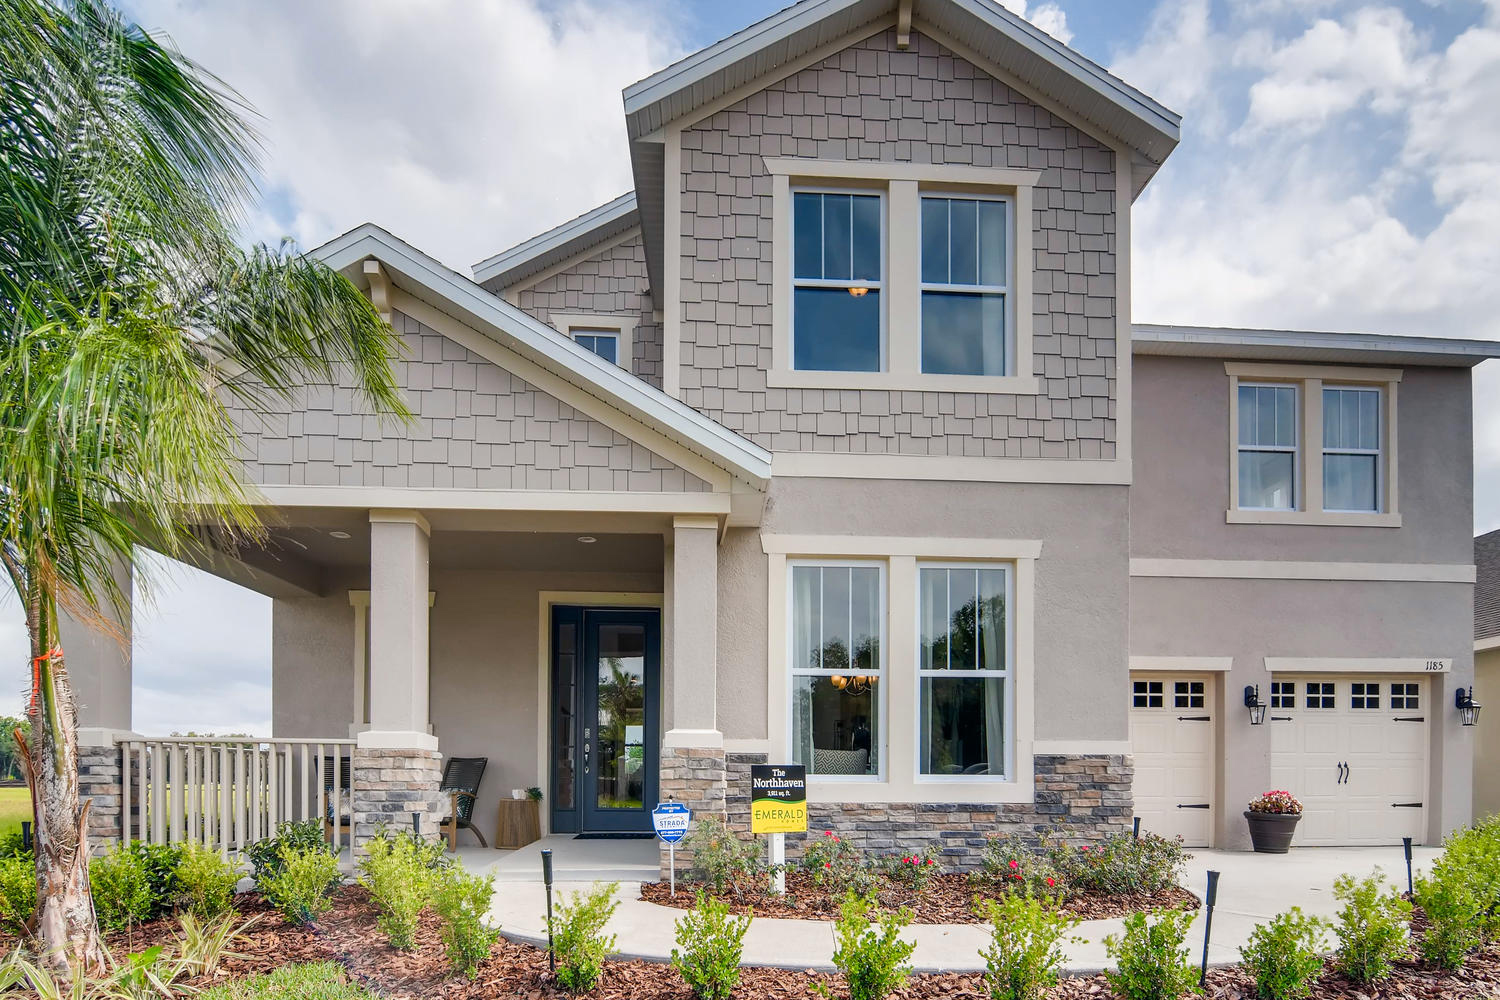 Terrific New Homes In Parkdale Place Oviedo Florida D R Horton Best Image Libraries Thycampuscom